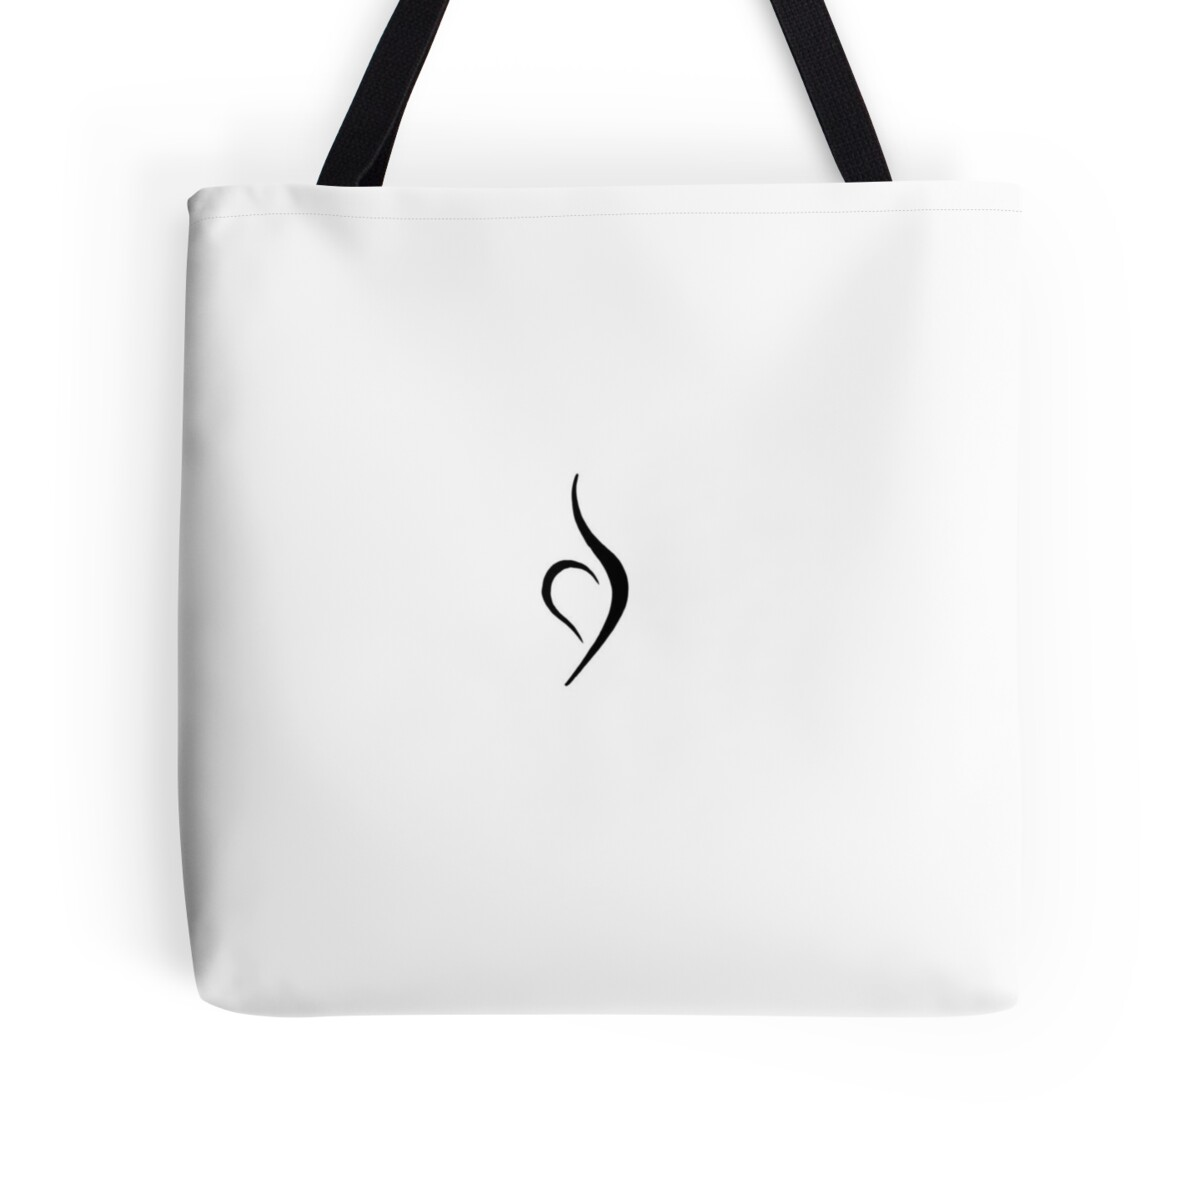 Eating disorder recovery symbol tote bags by erwj redbubble eating disorder recovery symbol by erwj biocorpaavc Image collections